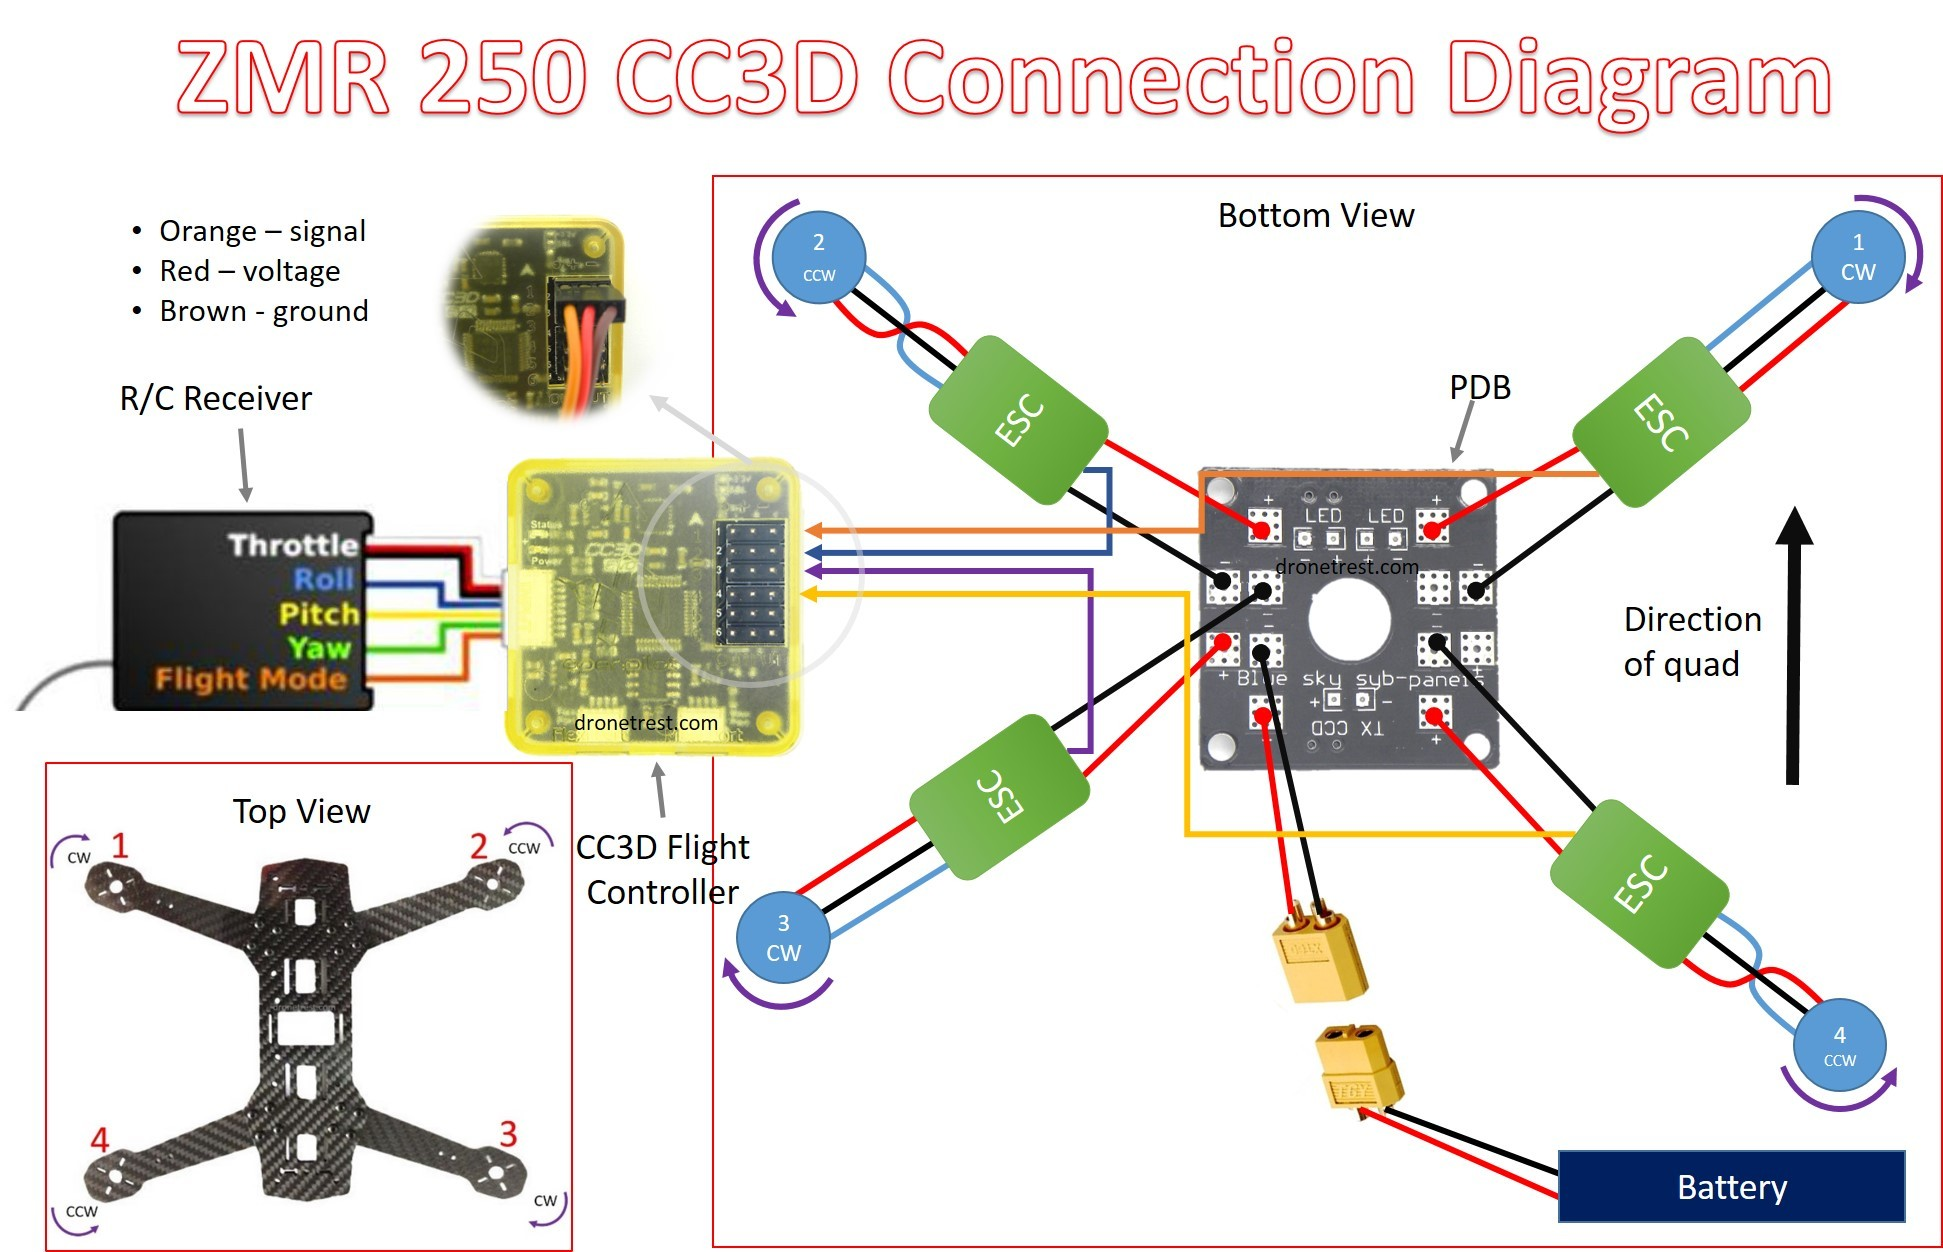 6359a9e4de77a2b154d6bdd8734ab879f0c4c51e qav zmr 250 assembly build guide guides dronetrest wiring diagram for a ccd camera at gsmportal.co